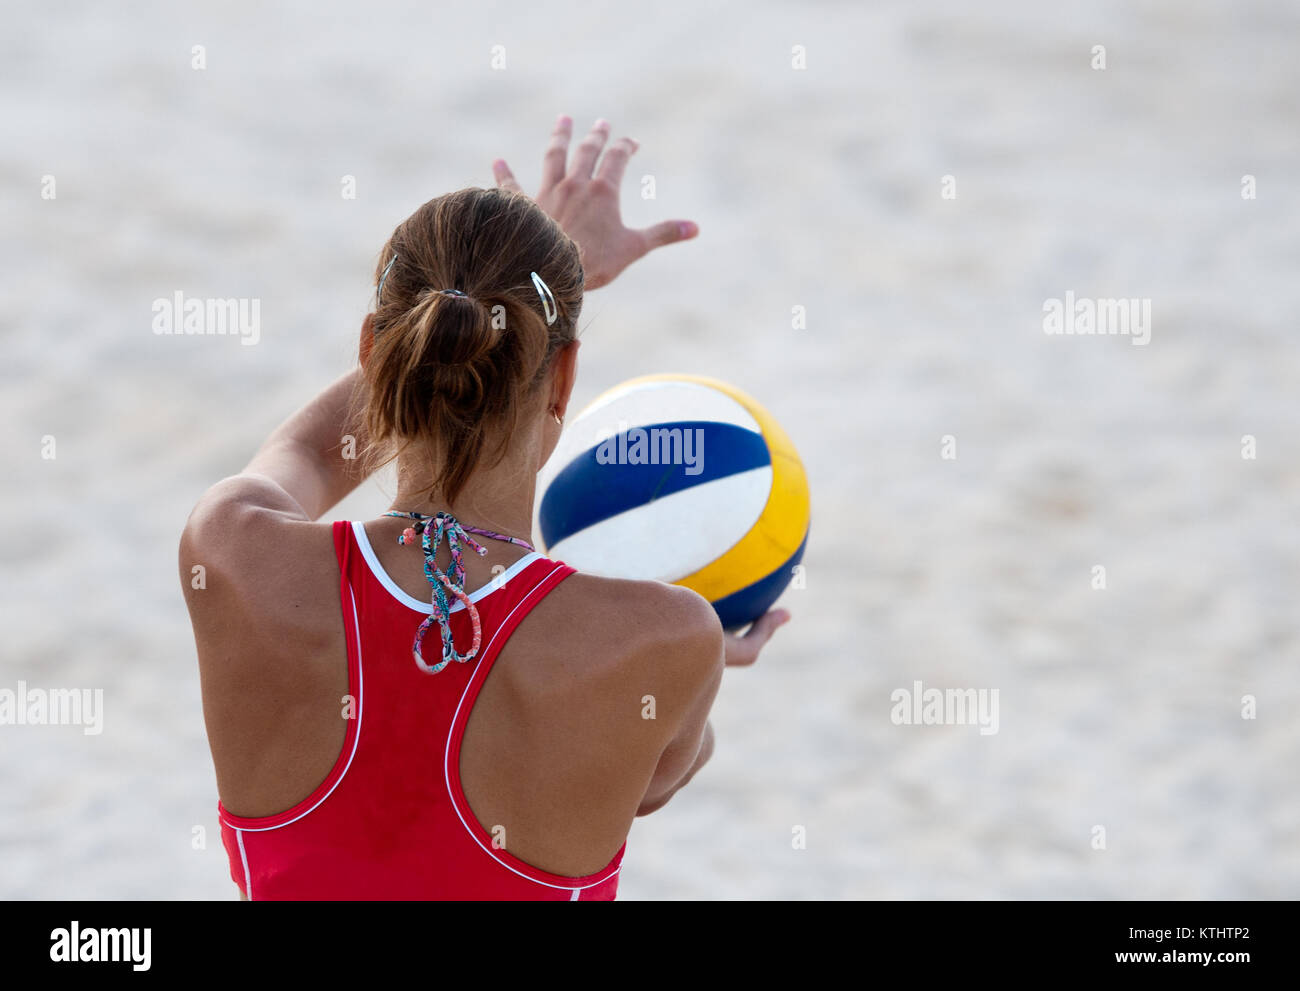 Young unrecognizable female athlete ready to serve on a beach volley game. - Stock Image